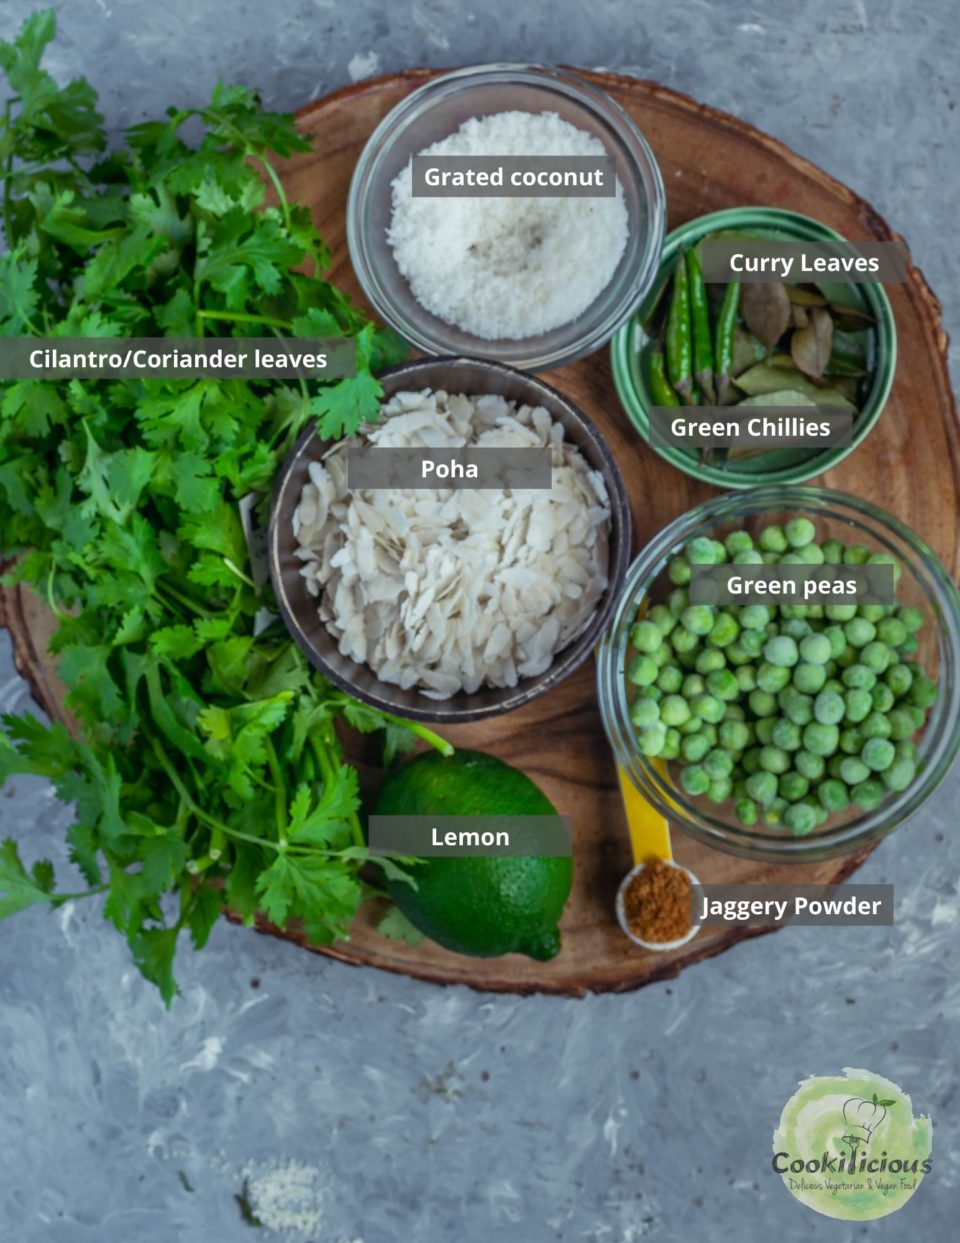 all the ingredients needed to make plant-based snack cilantro poha (rice flakes) recipe are placed in a platter